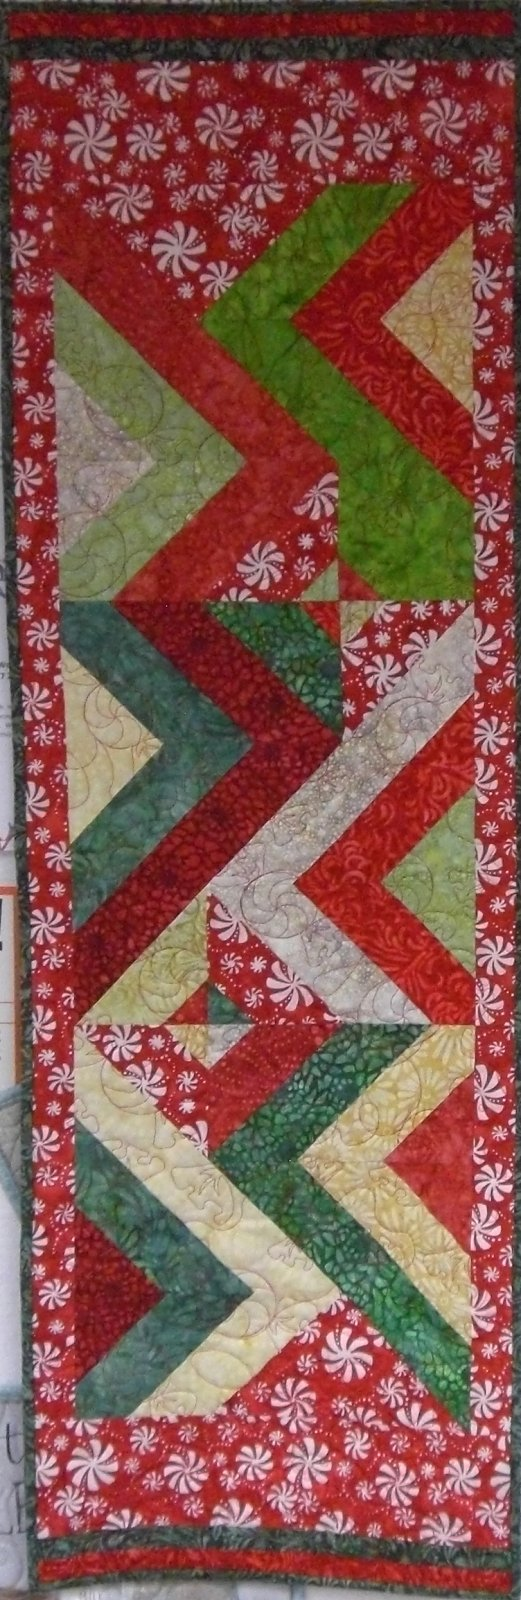 Finished quilt Rockin' Jelly Roll Christmas Runner